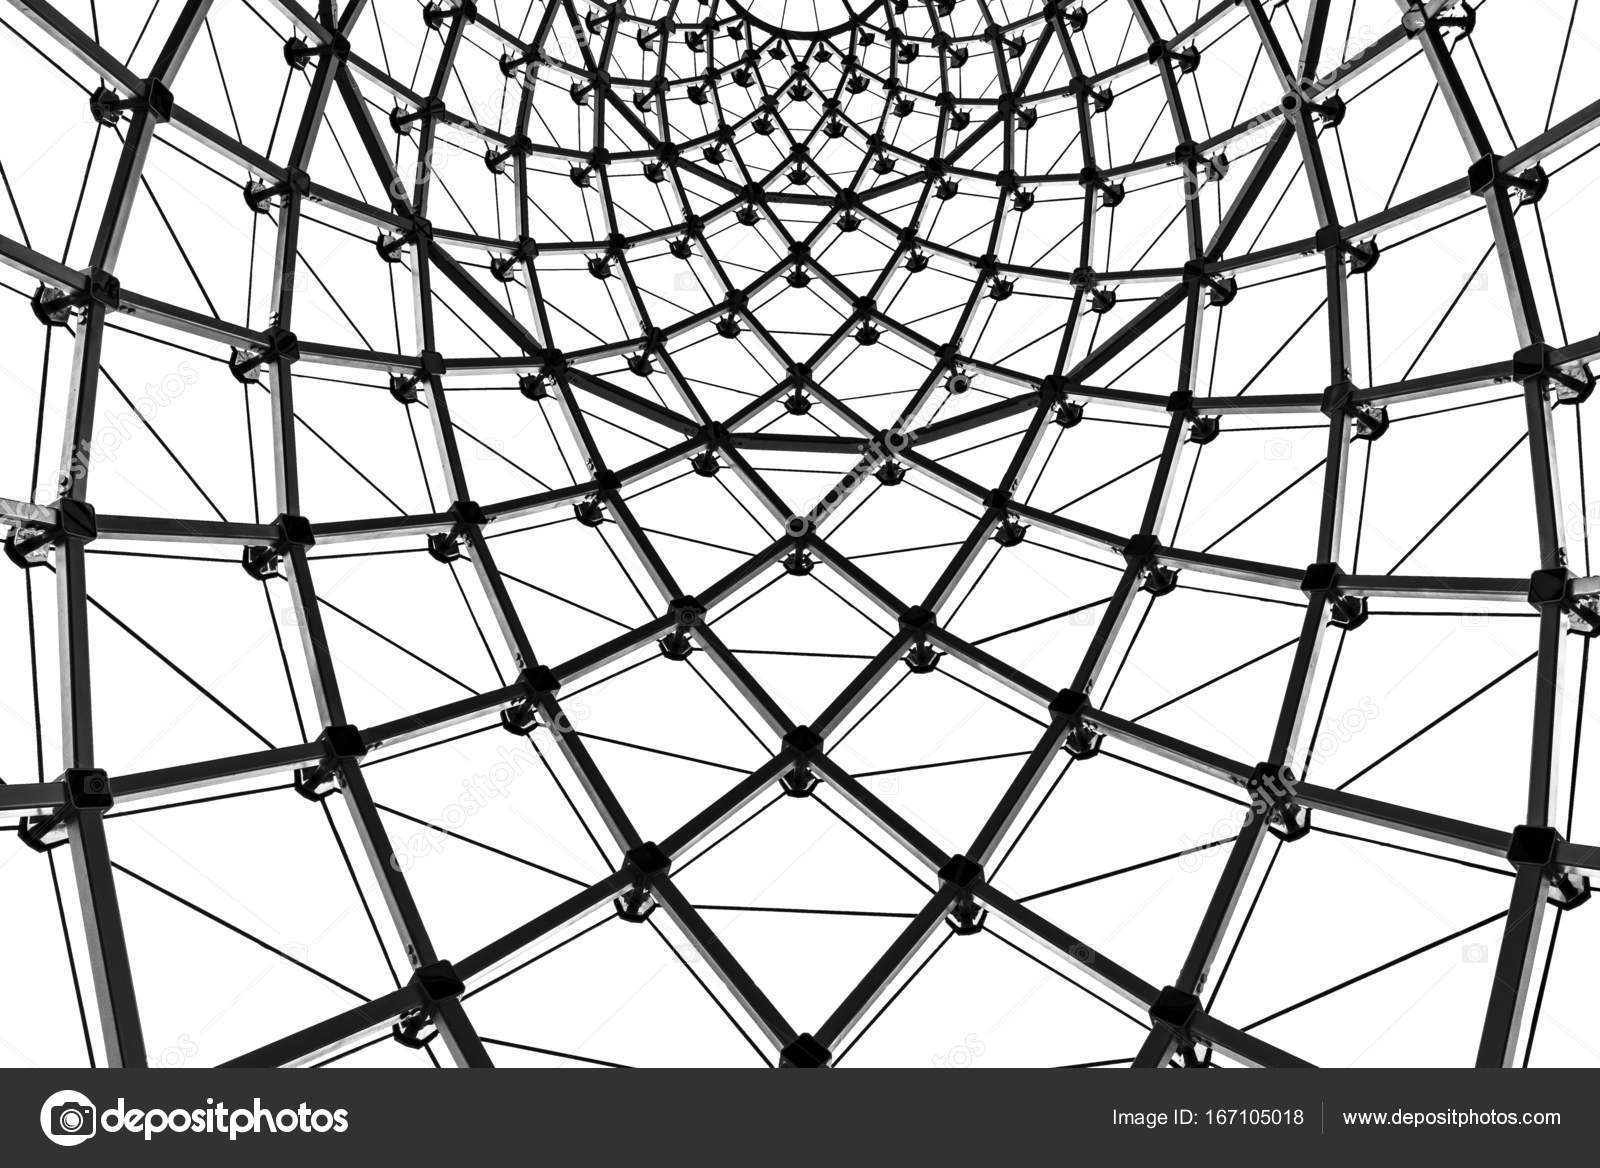 abstract architectural background curved steel beam glass ceiling Steel I Beams abstract architectural background curved steel beam glass ceiling stock image